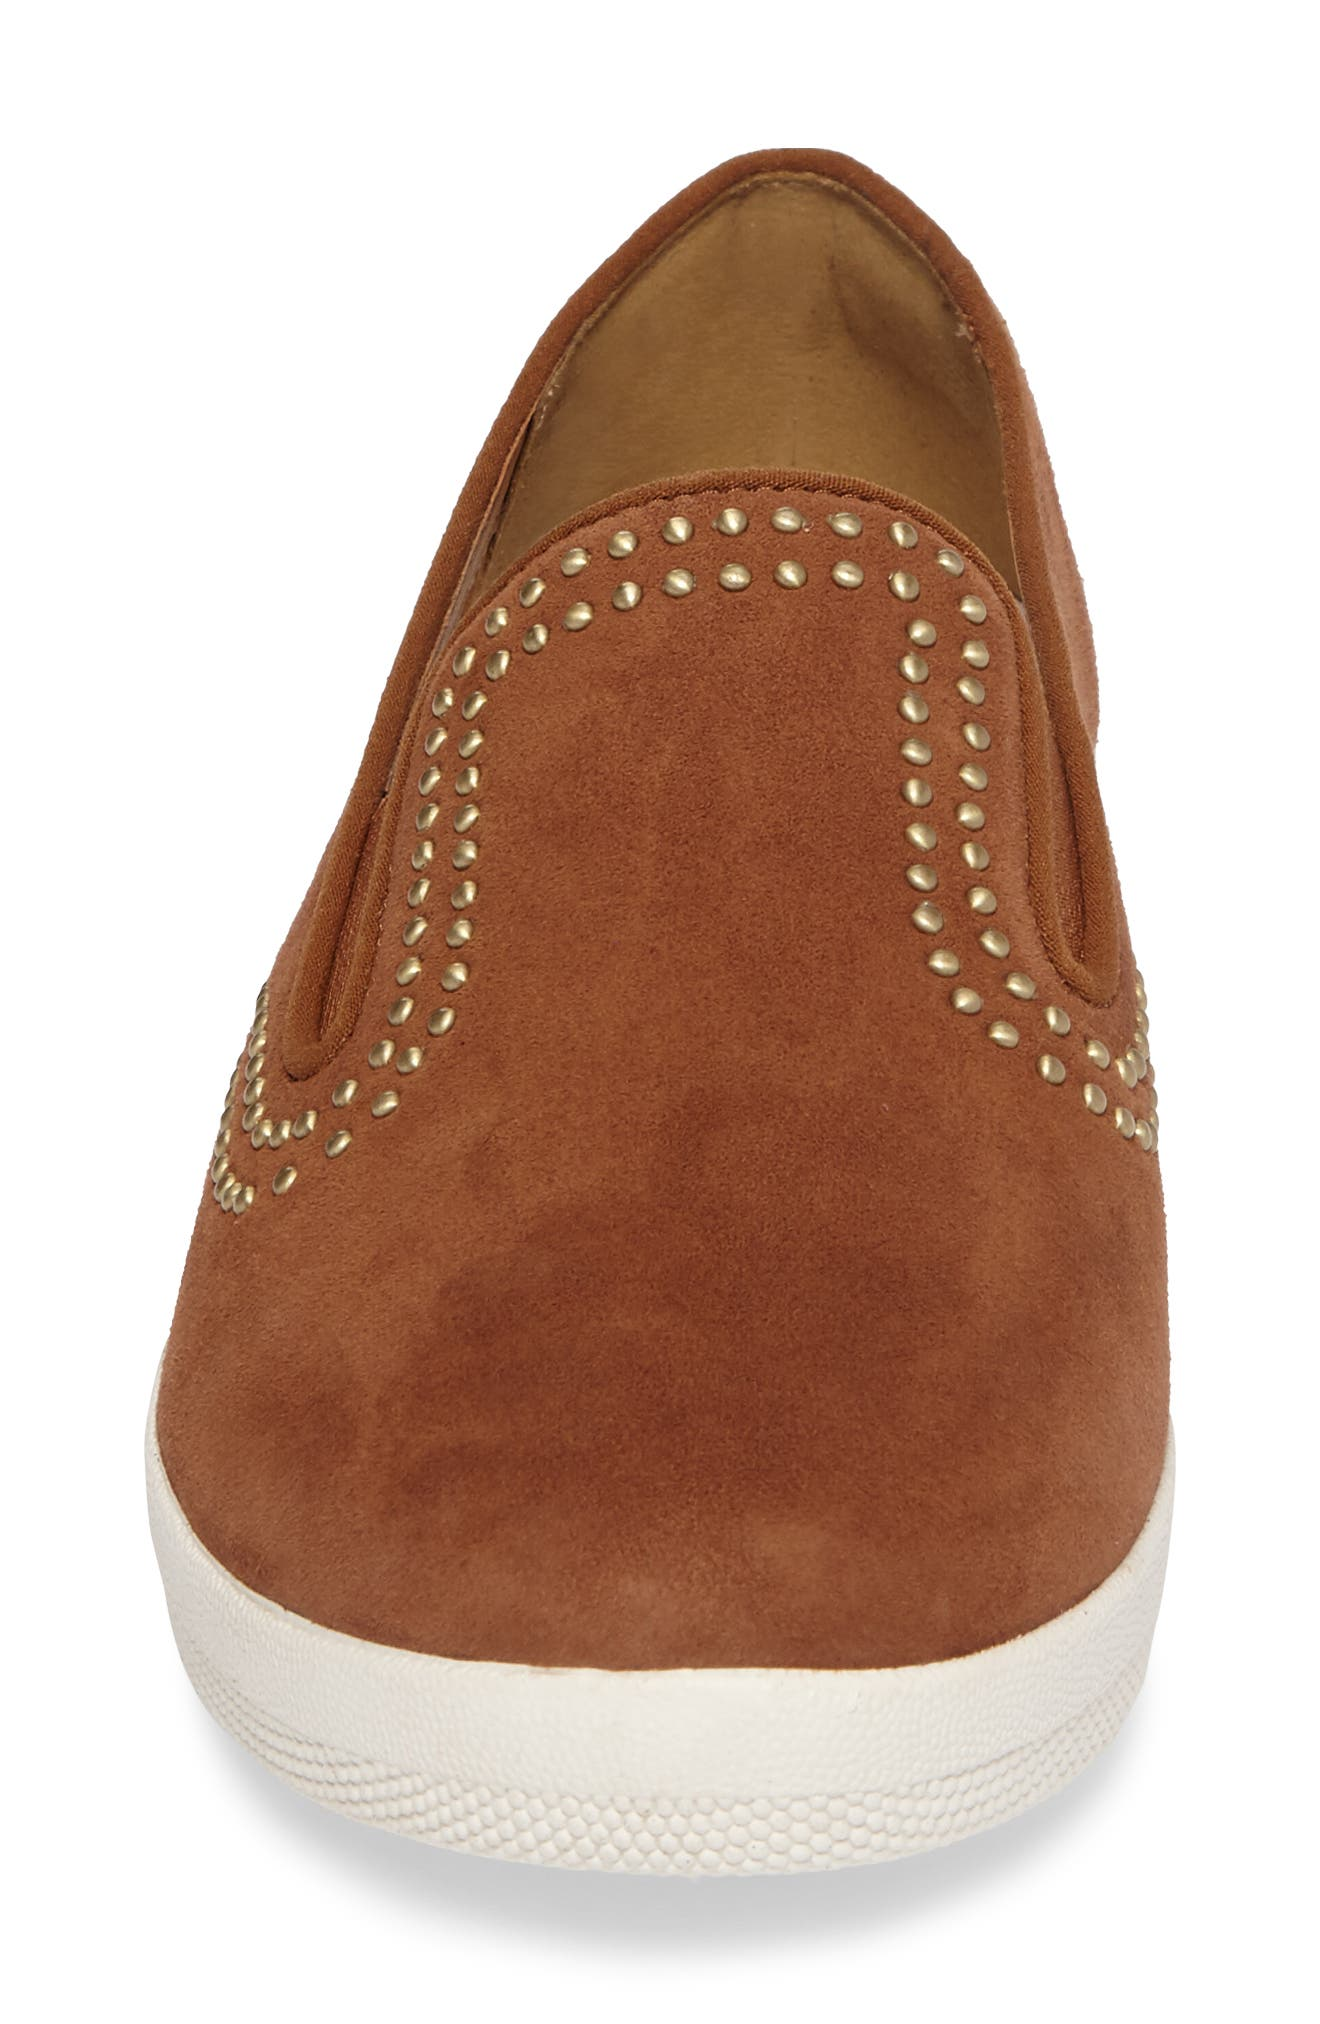 Superskate Studded Wedge Loafer,                             Alternate thumbnail 4, color,                             250